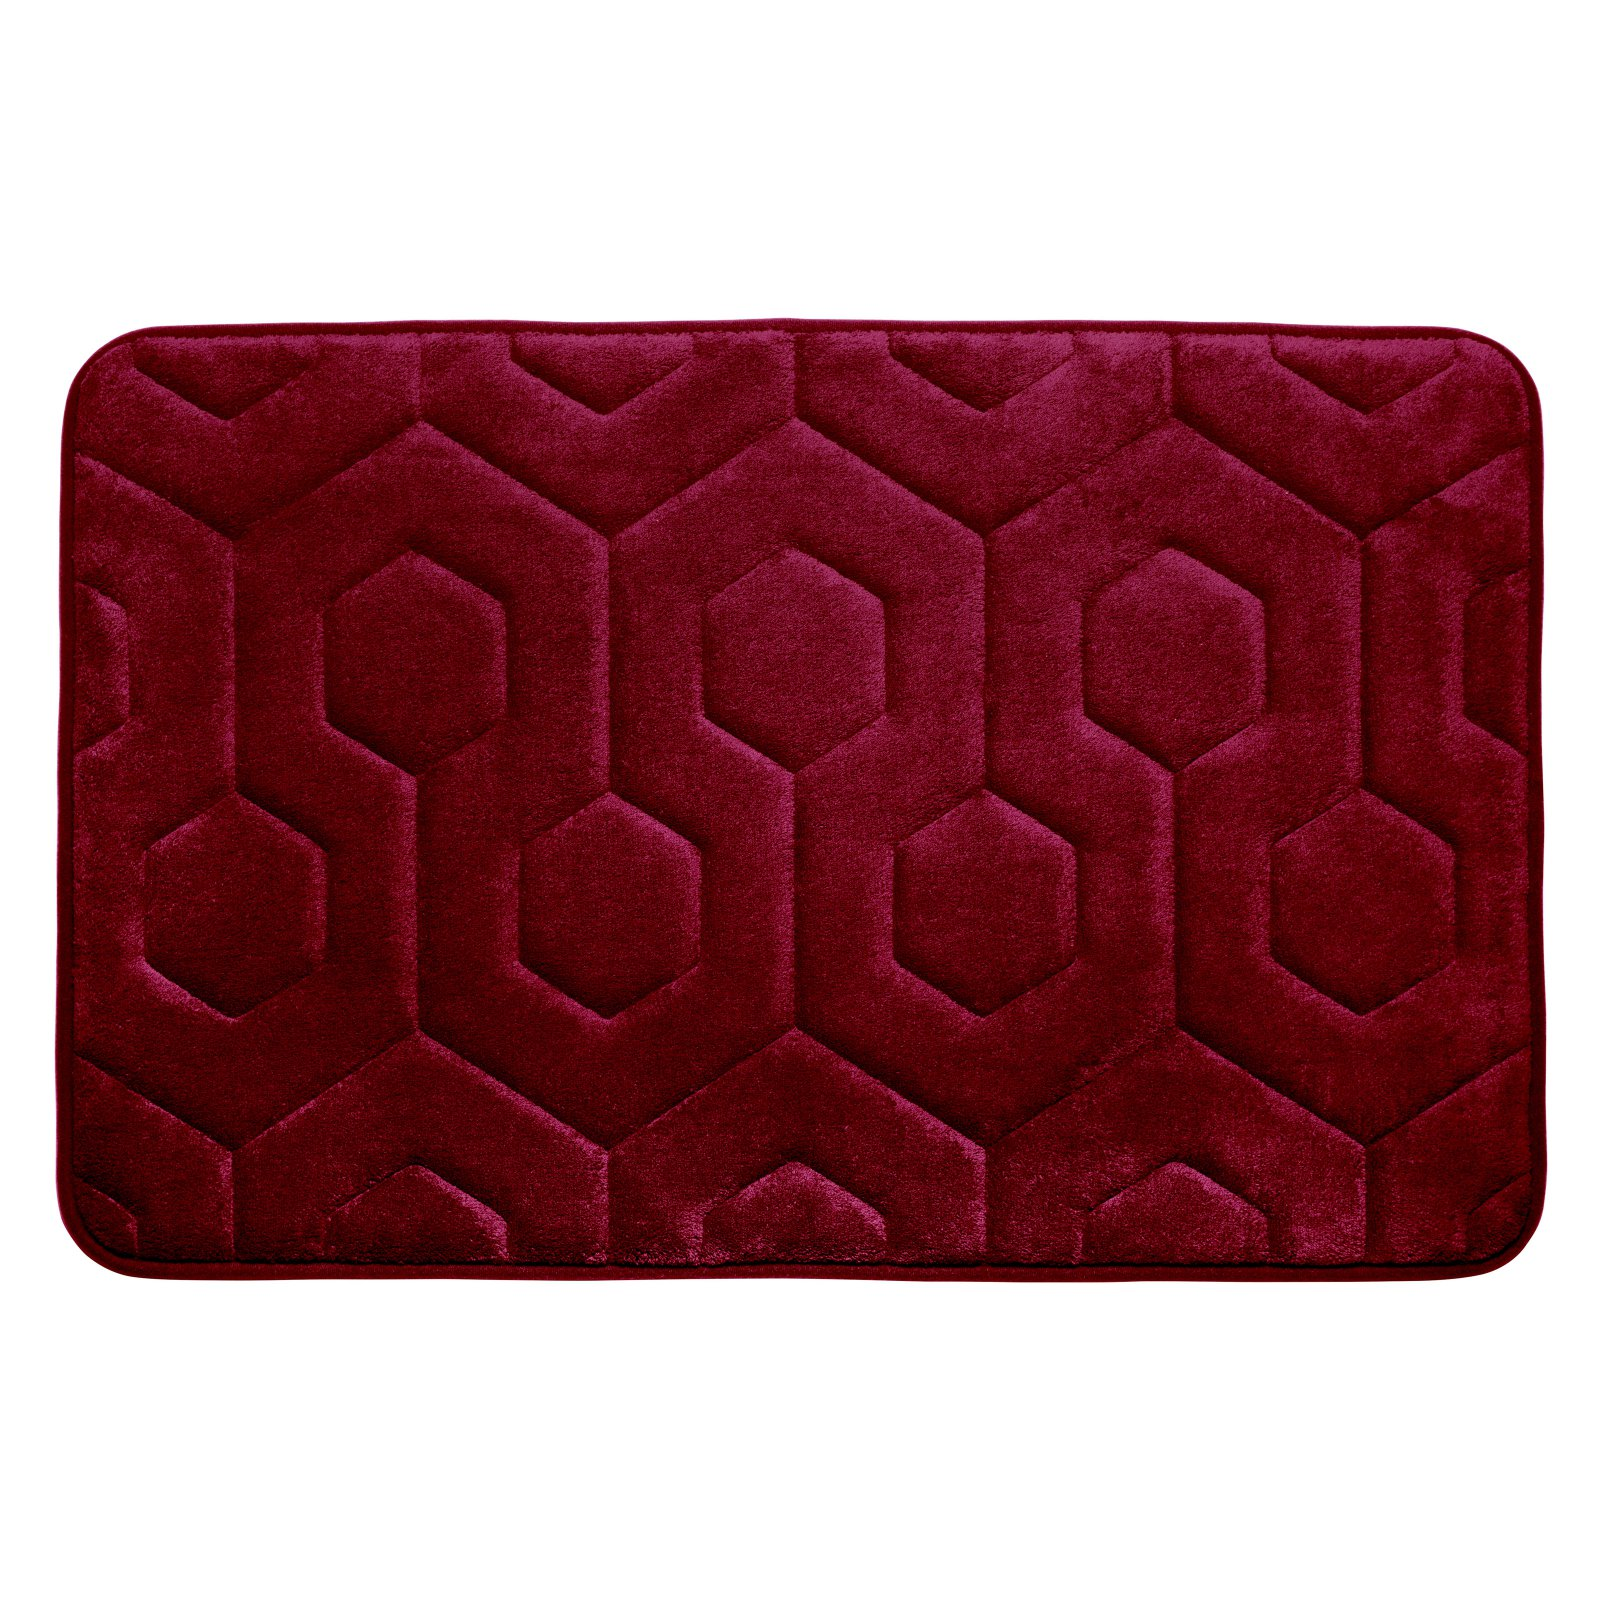 Bounce Comfort Hexagon Premium Memory Foam Bath Mat